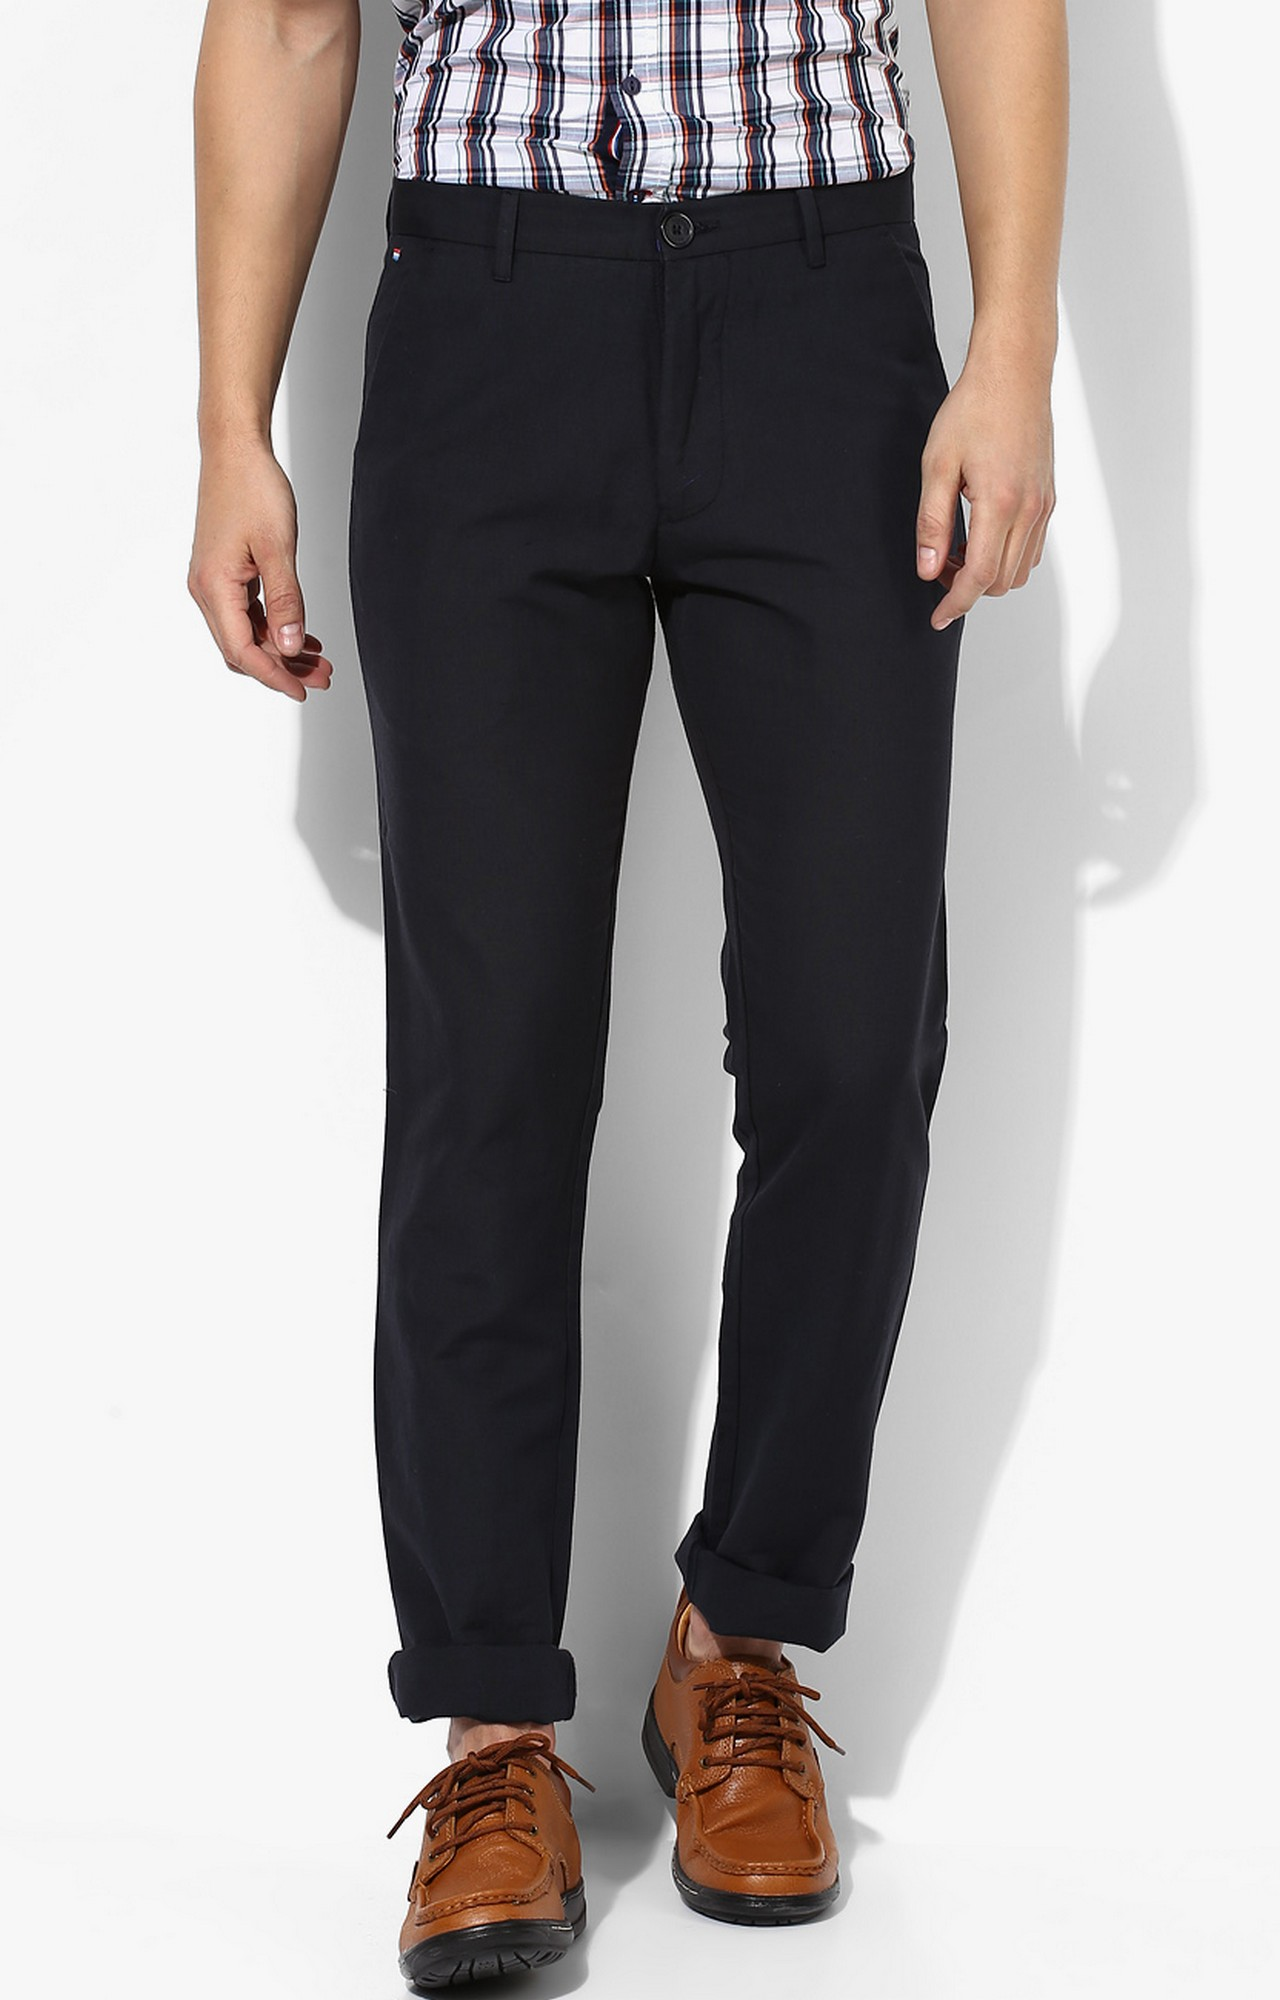 RED CHIEF | Matte Black Solid Straight Chinos